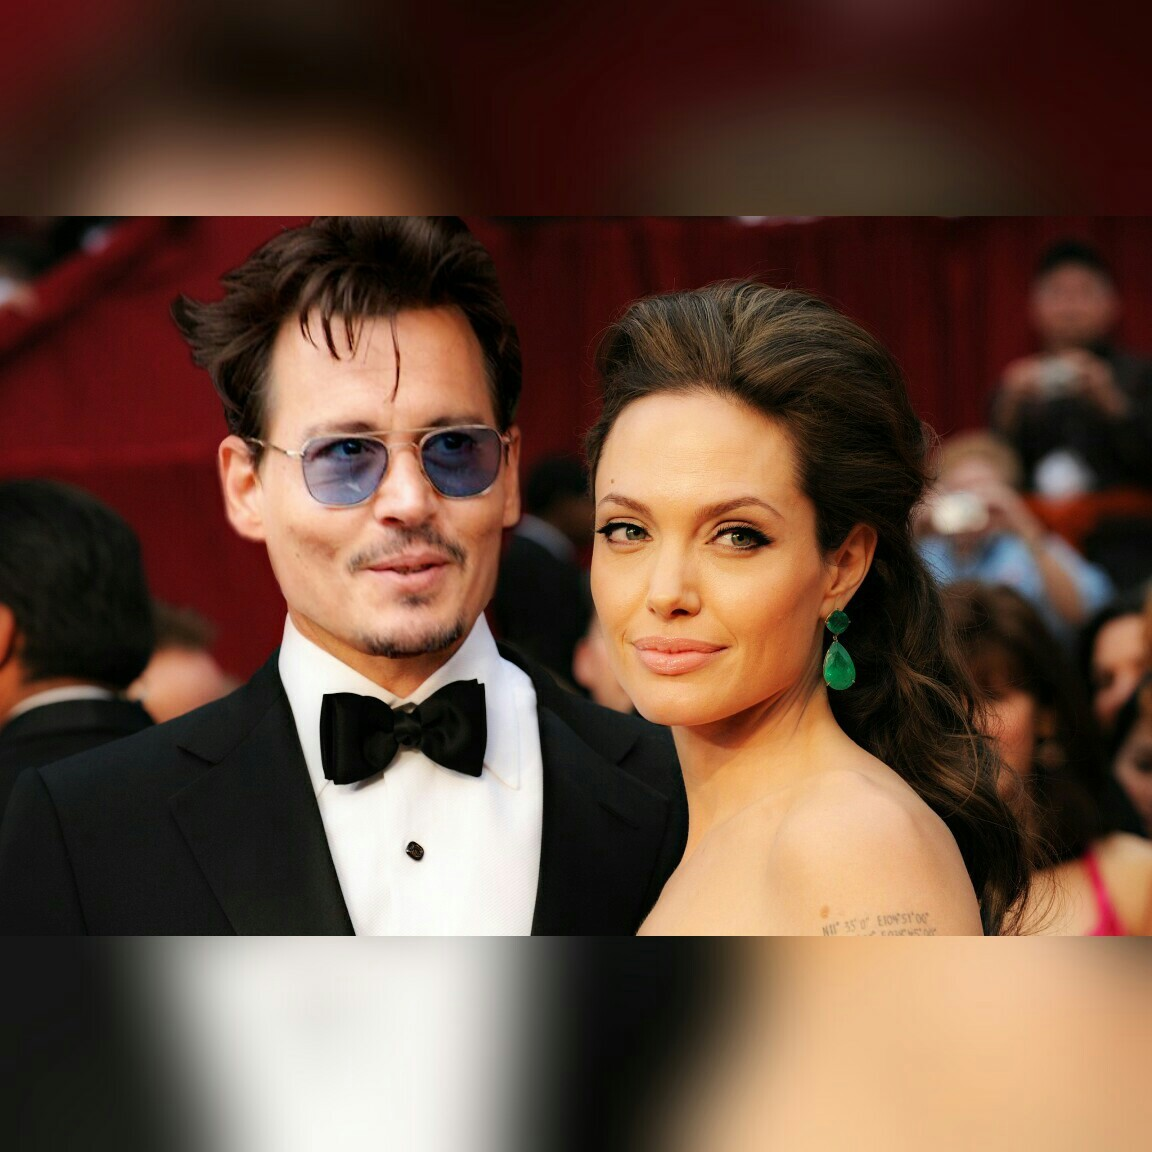 Angelina Jolie And Johnny Depp On We Heart It